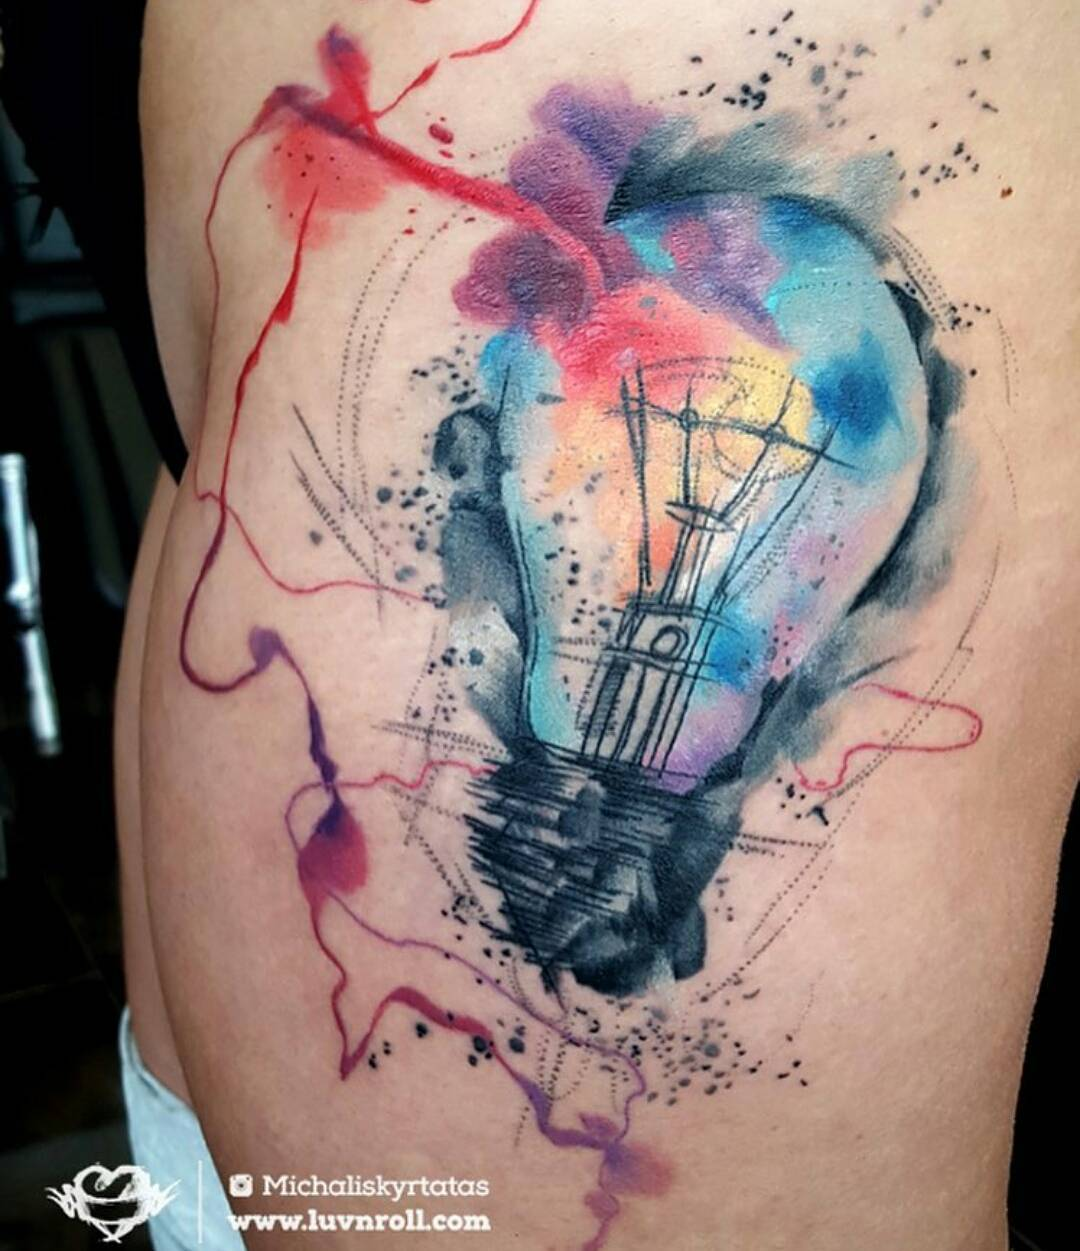 18 incredible watercolour tattoos find the best tattoo artists anywhere in the world. Black Bedroom Furniture Sets. Home Design Ideas